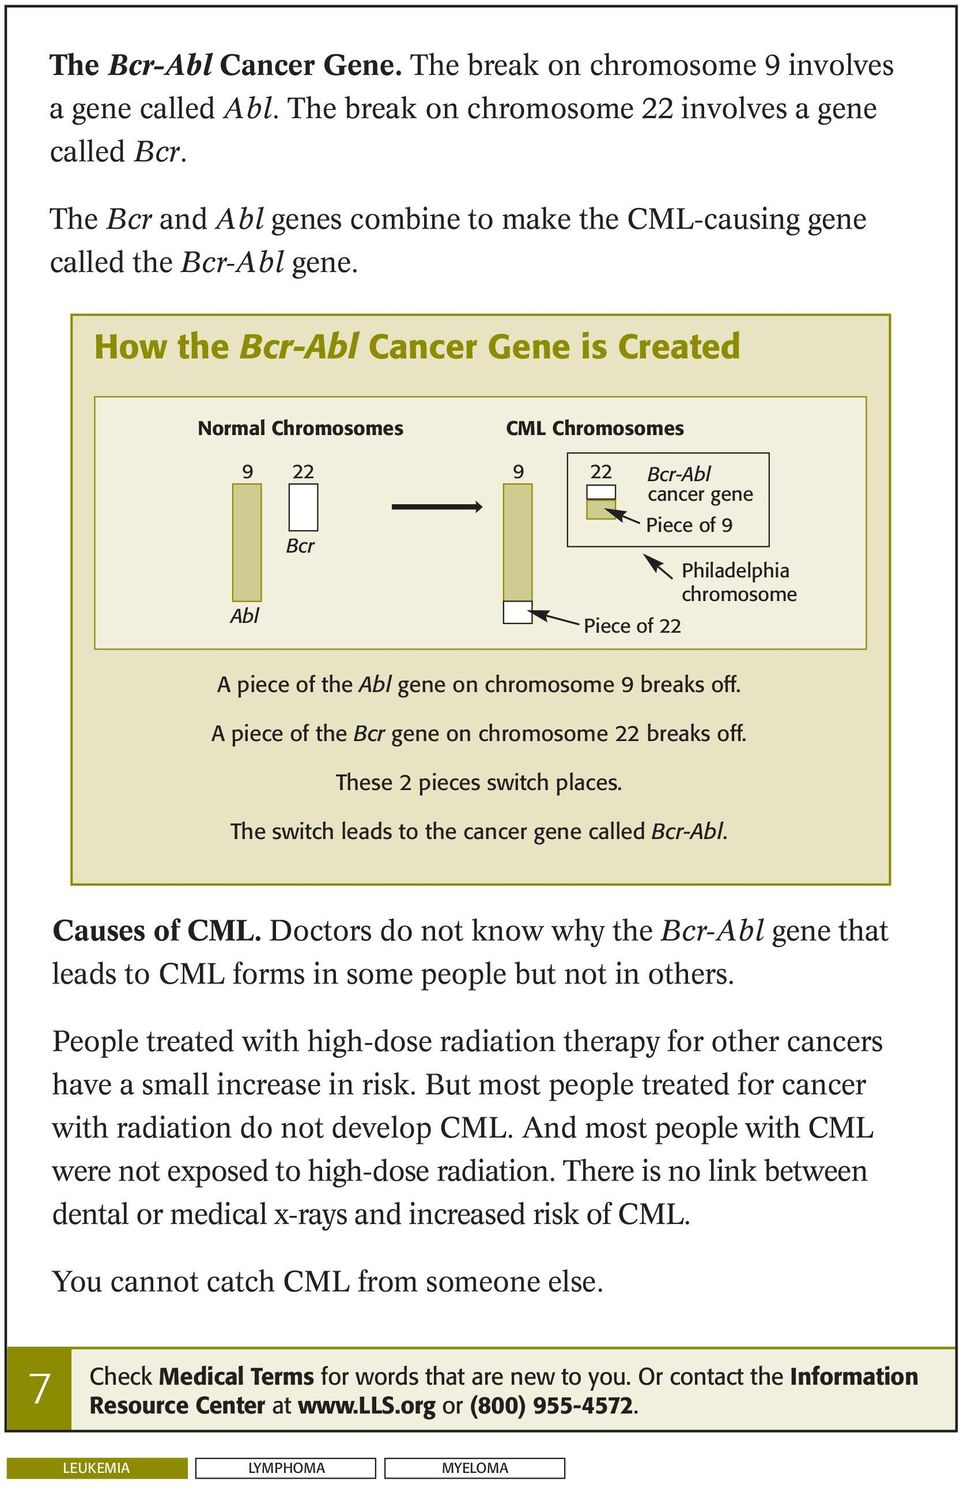 How the Bcr-Abl Cancer Gene is Created Normal Chromosomes 9 22 Bcr Abl CML Chromosomes 9 22 Piece of 22 Bcr-Abl cancer gene Piece of 9 Philadelphia chromosome A piece of the Abl gene on chromosome 9